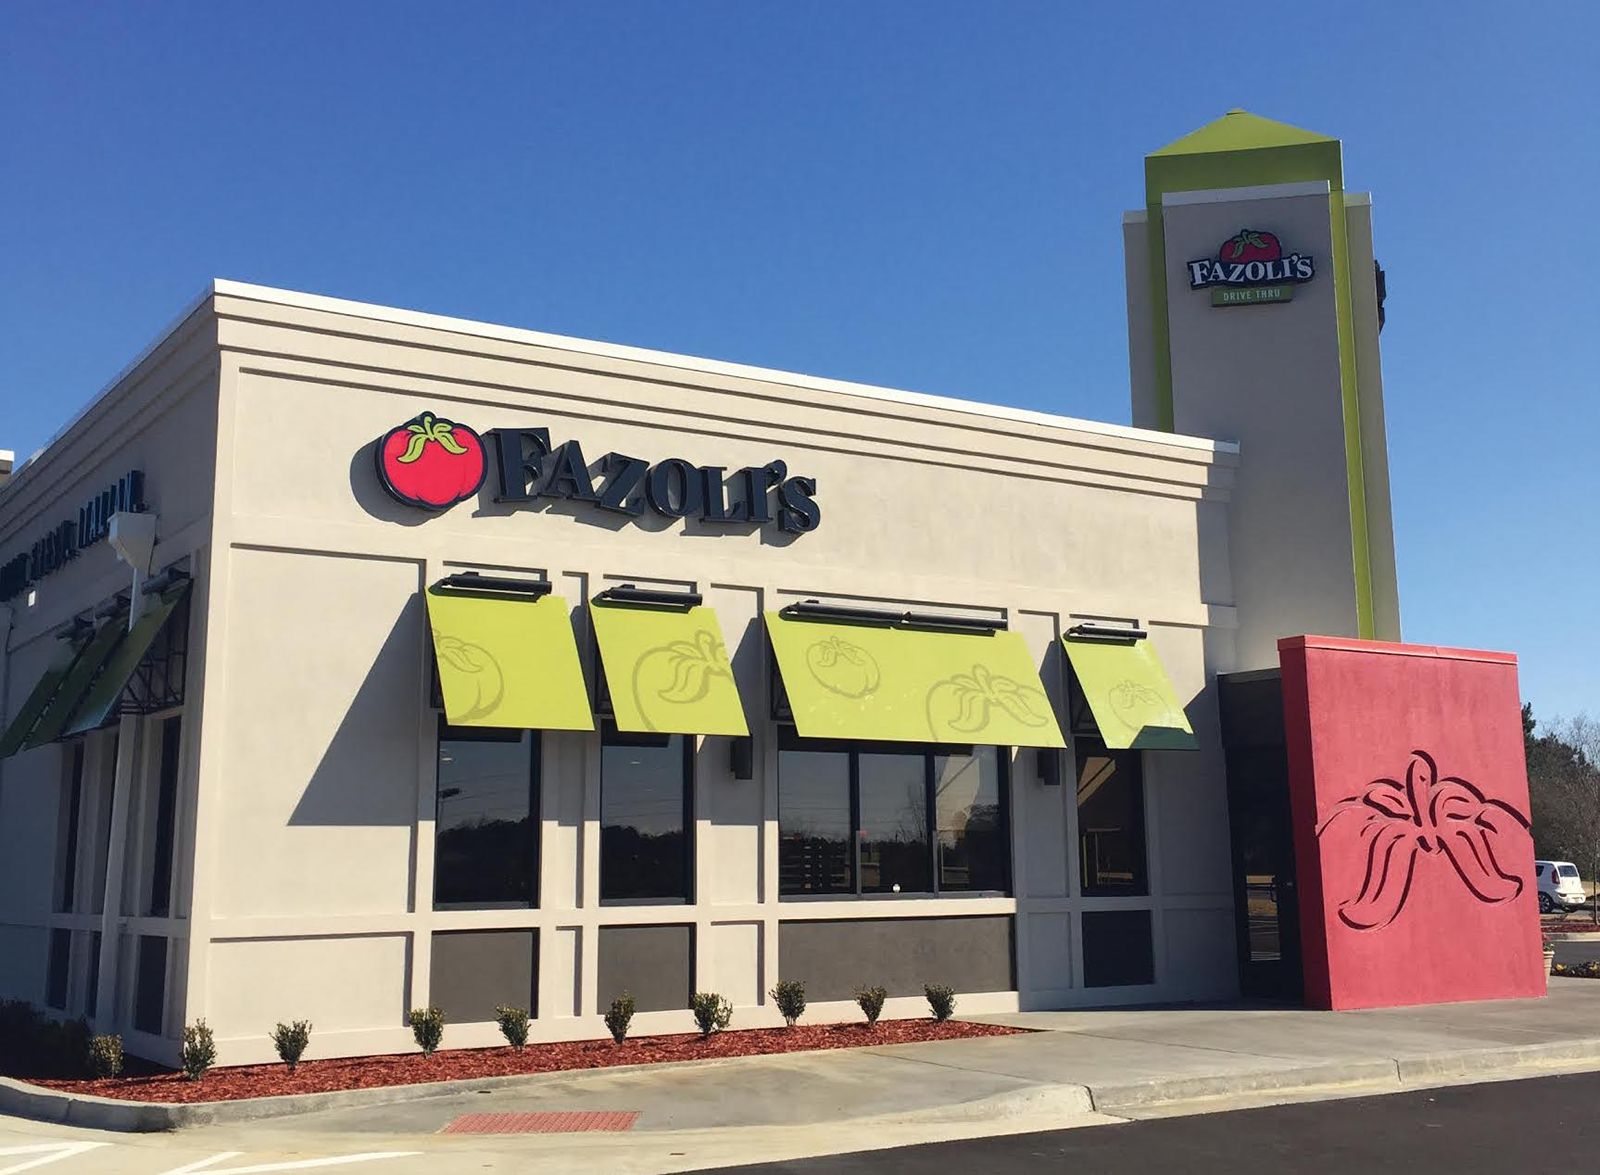 Fazoli's Continues 2018 Development Momentum With New Openings And Successful Market Relaunches